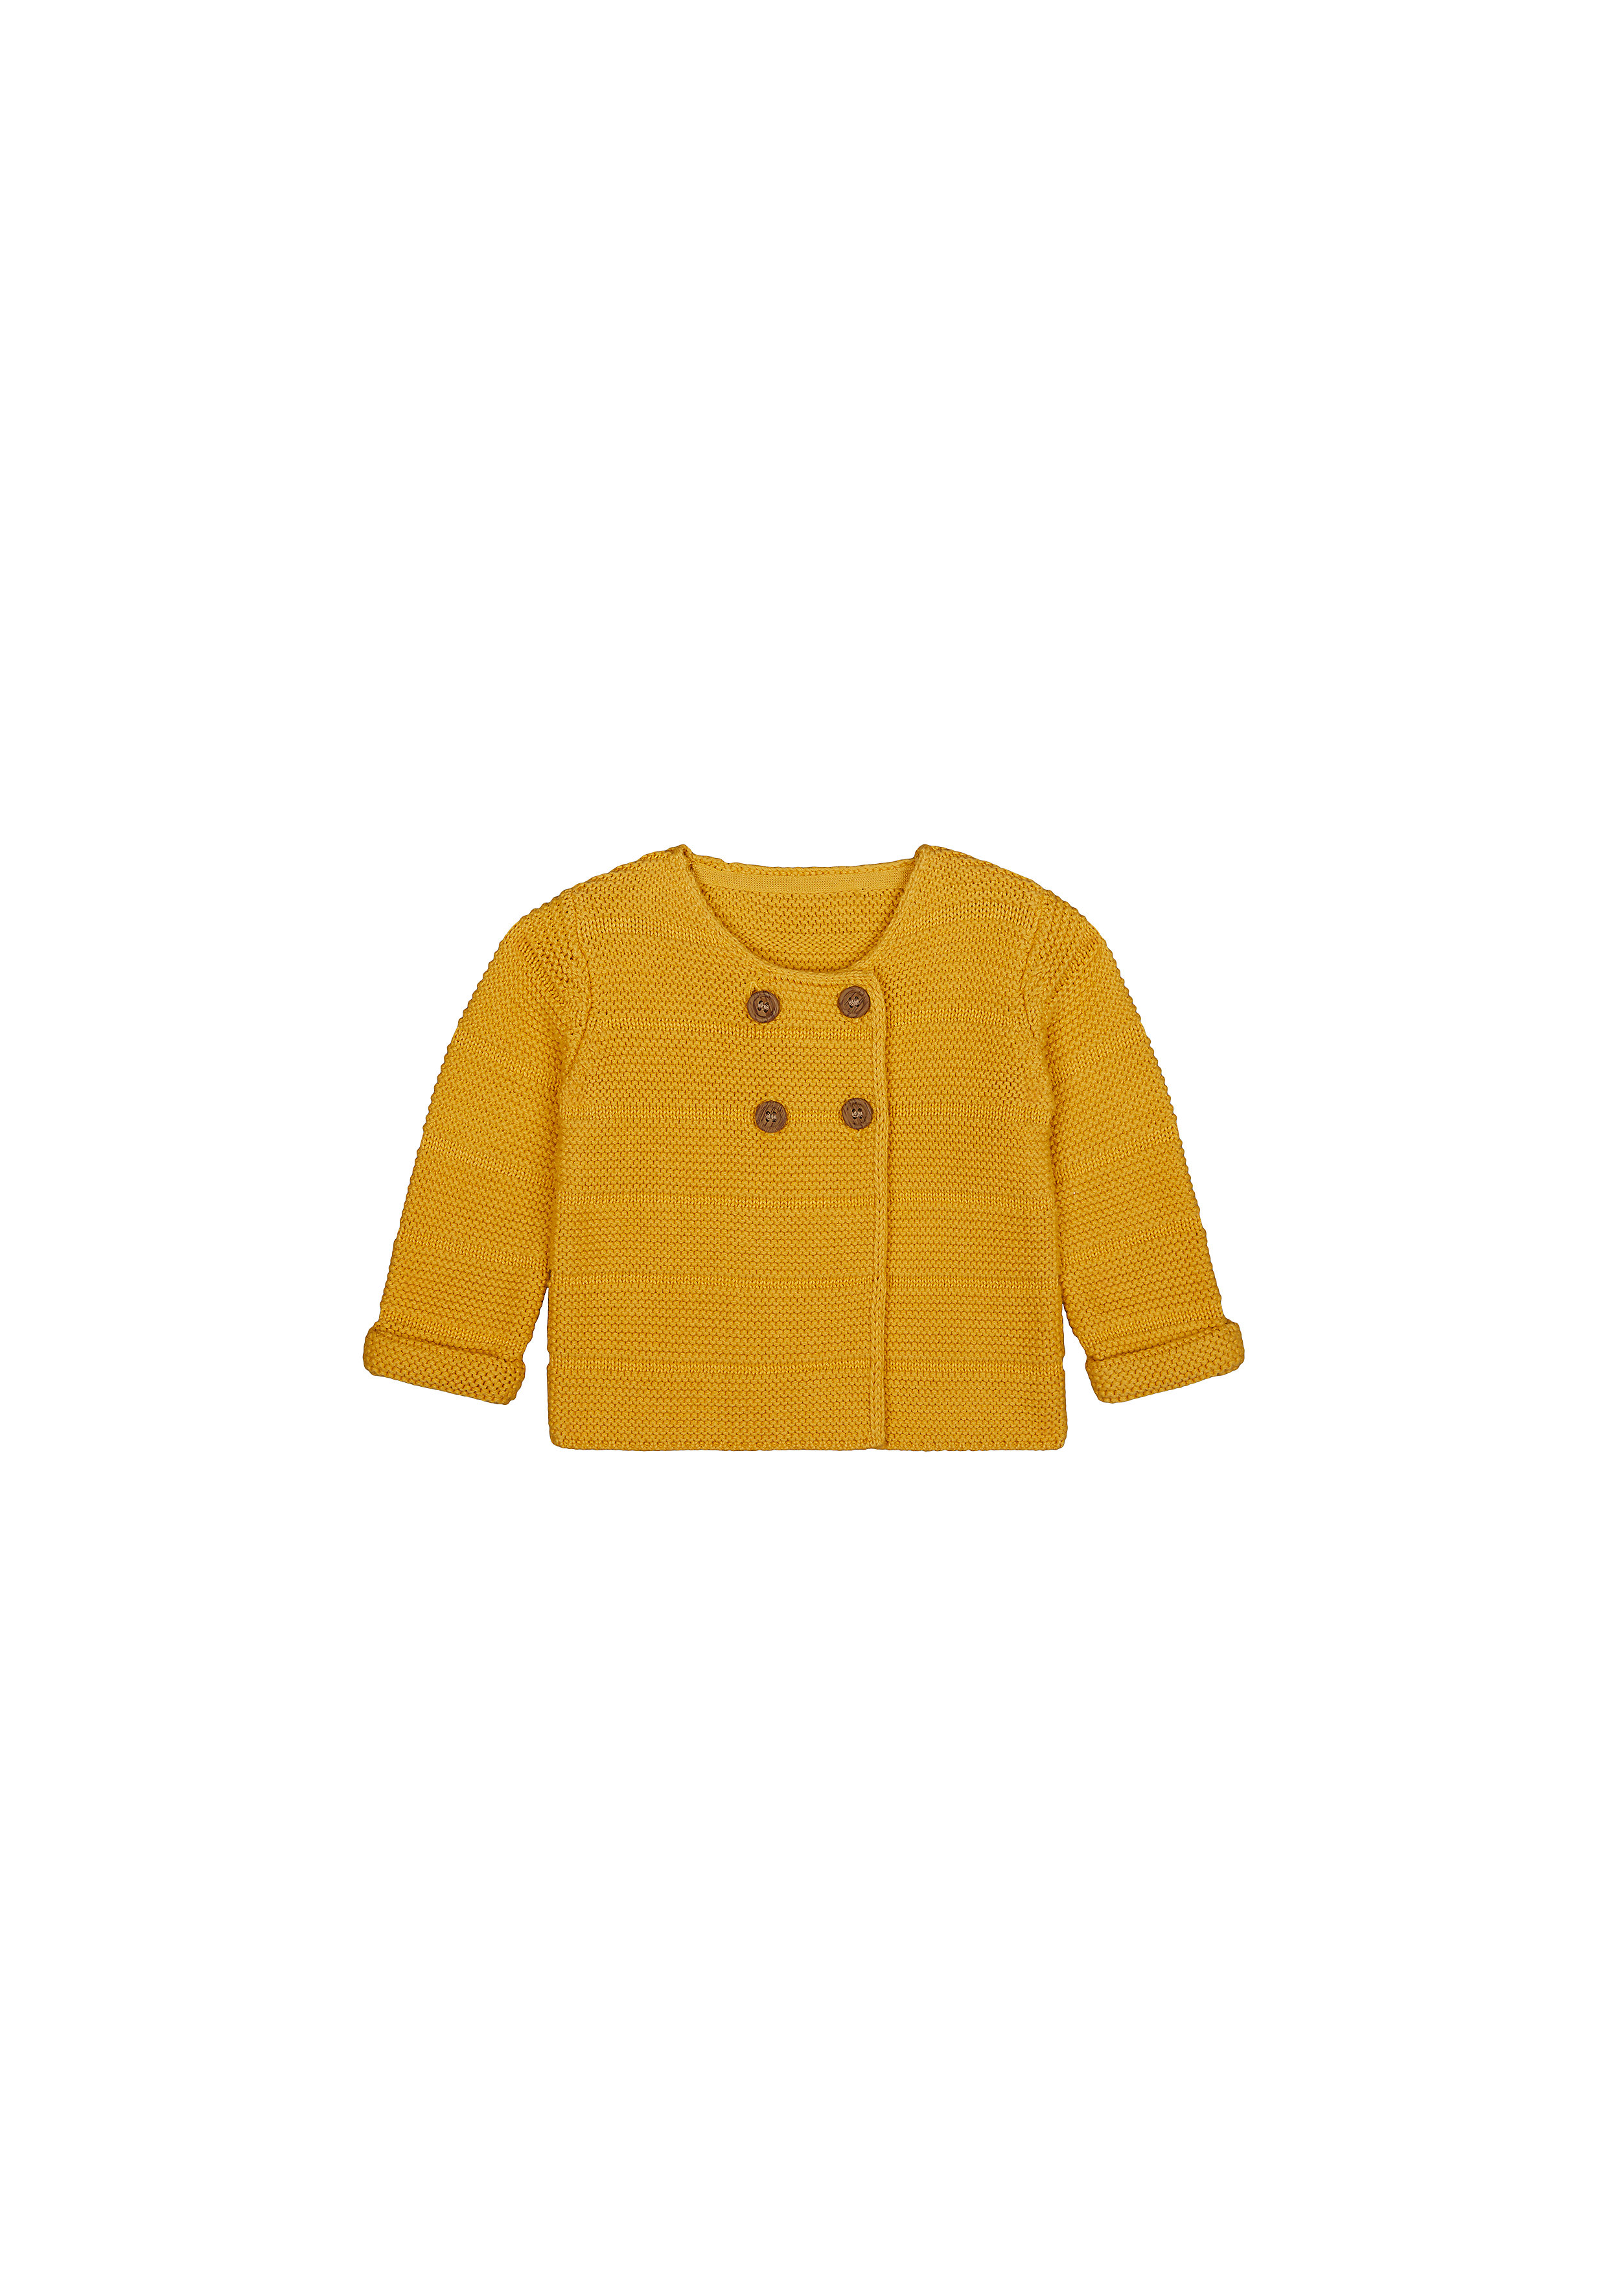 Mothercare | Girls Full Sleeves Sweaters  - Yellow